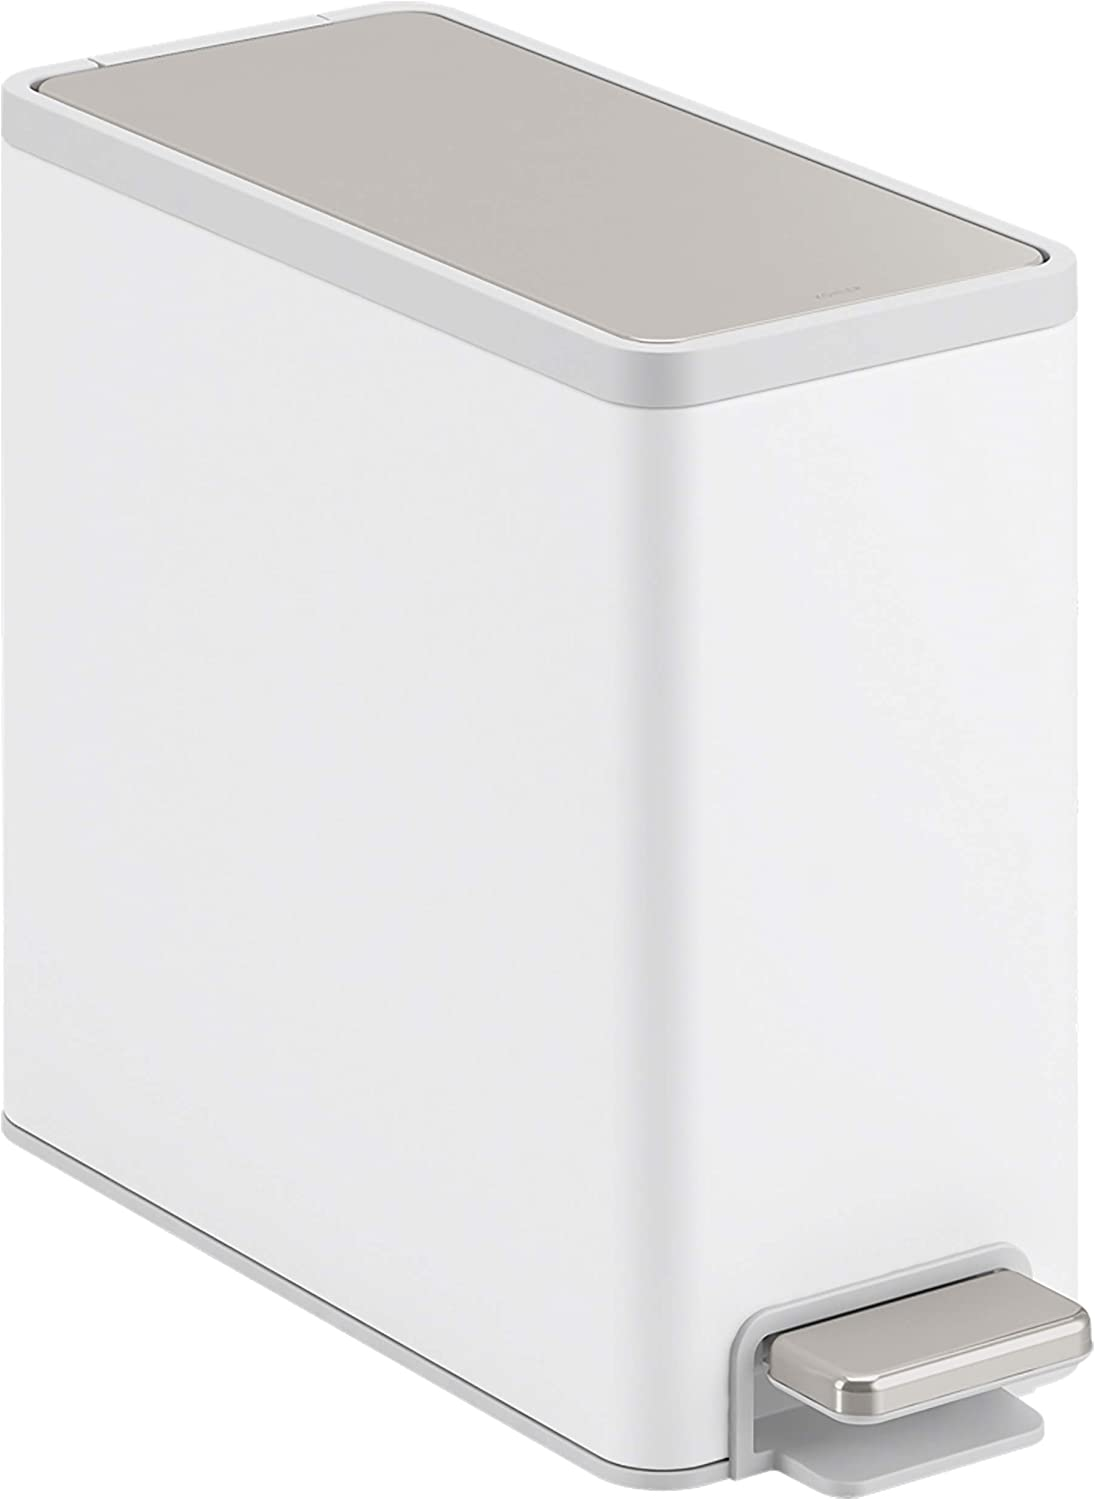 KOHLER K-20957-STW 2.5 gallon Slim Step Trash Can, White With Stainless Steel